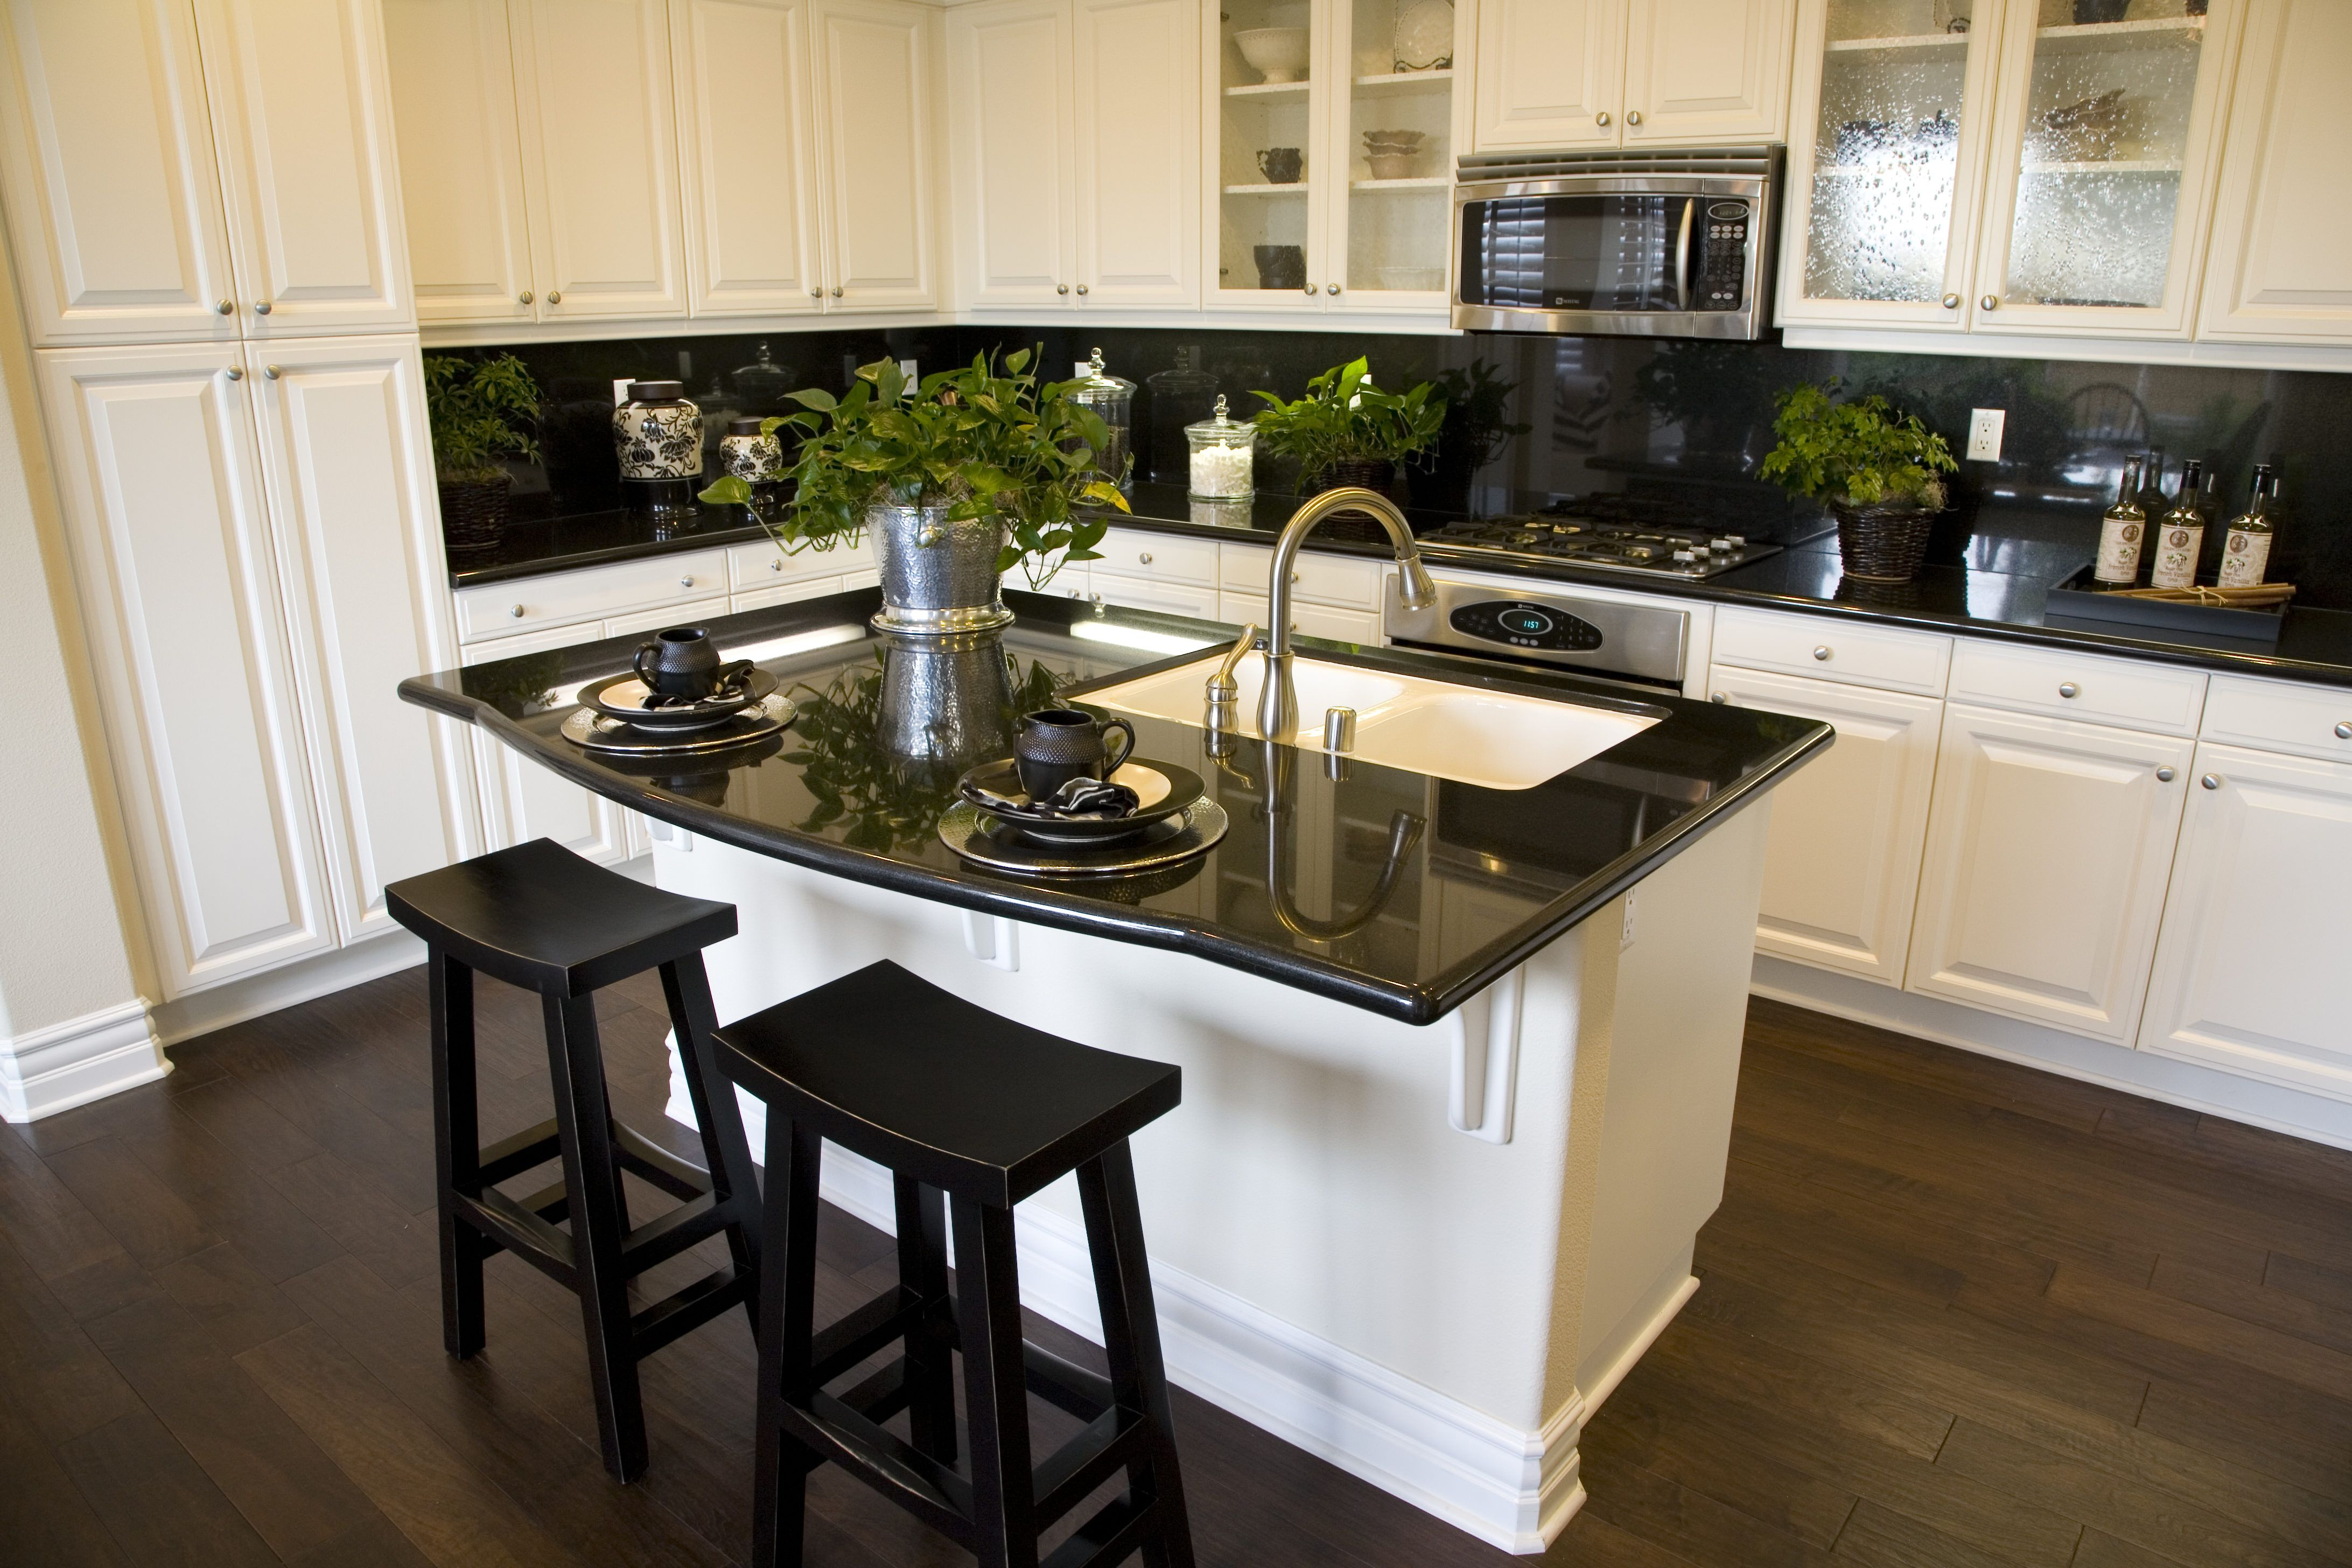 Selling Your Manufactured Home What Buyers Look For White Kitchen Traditional Traditional White Kitchen Cabinets Black Countertops